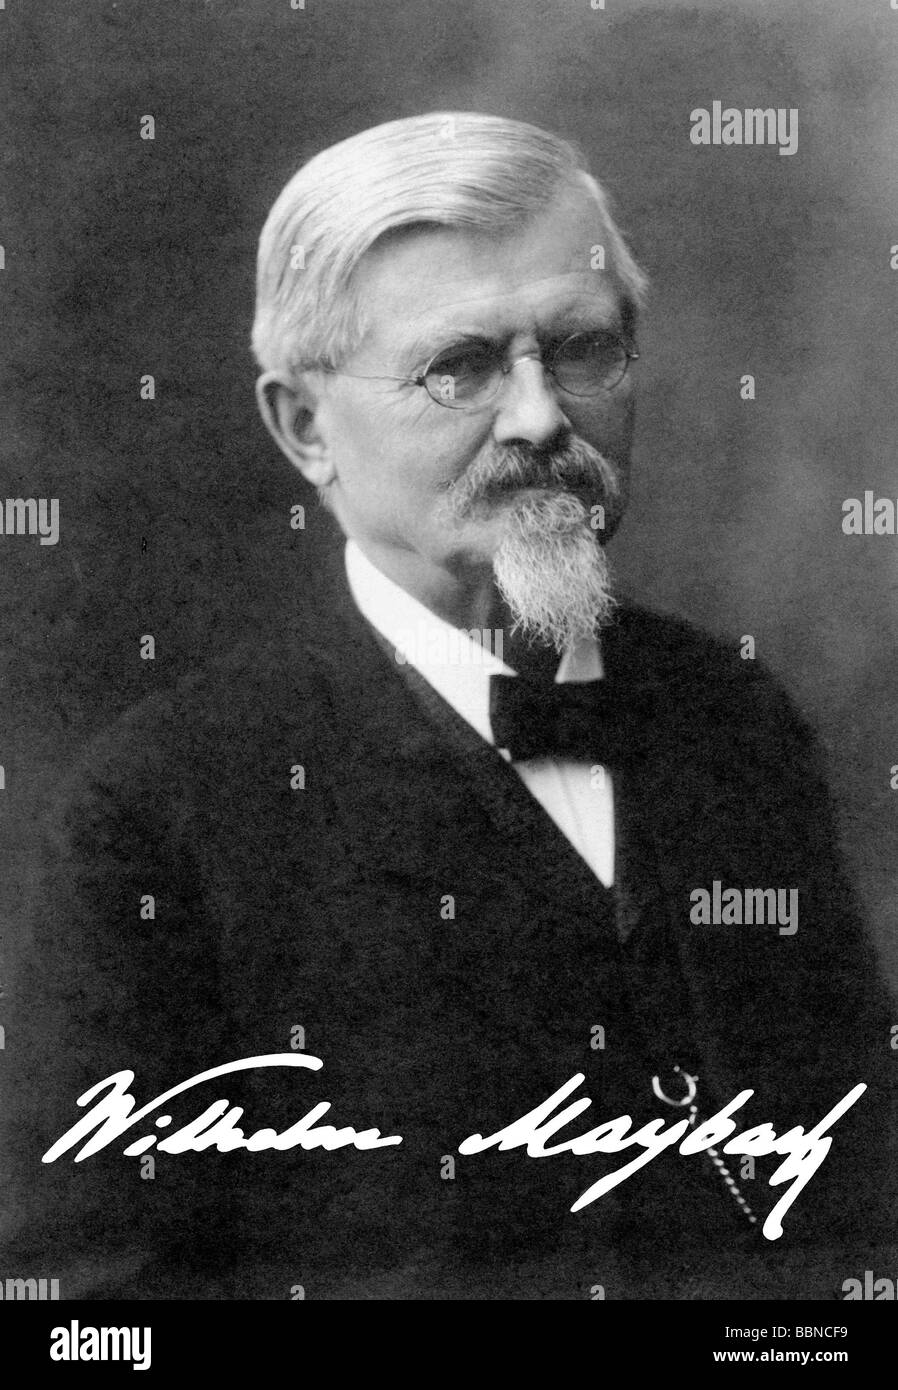 Maybach, Wilhelm, 9.2.1846 - 29.12.1929, German engineer, portrait, photograph with signature, , Additional-Rights - Stock Image